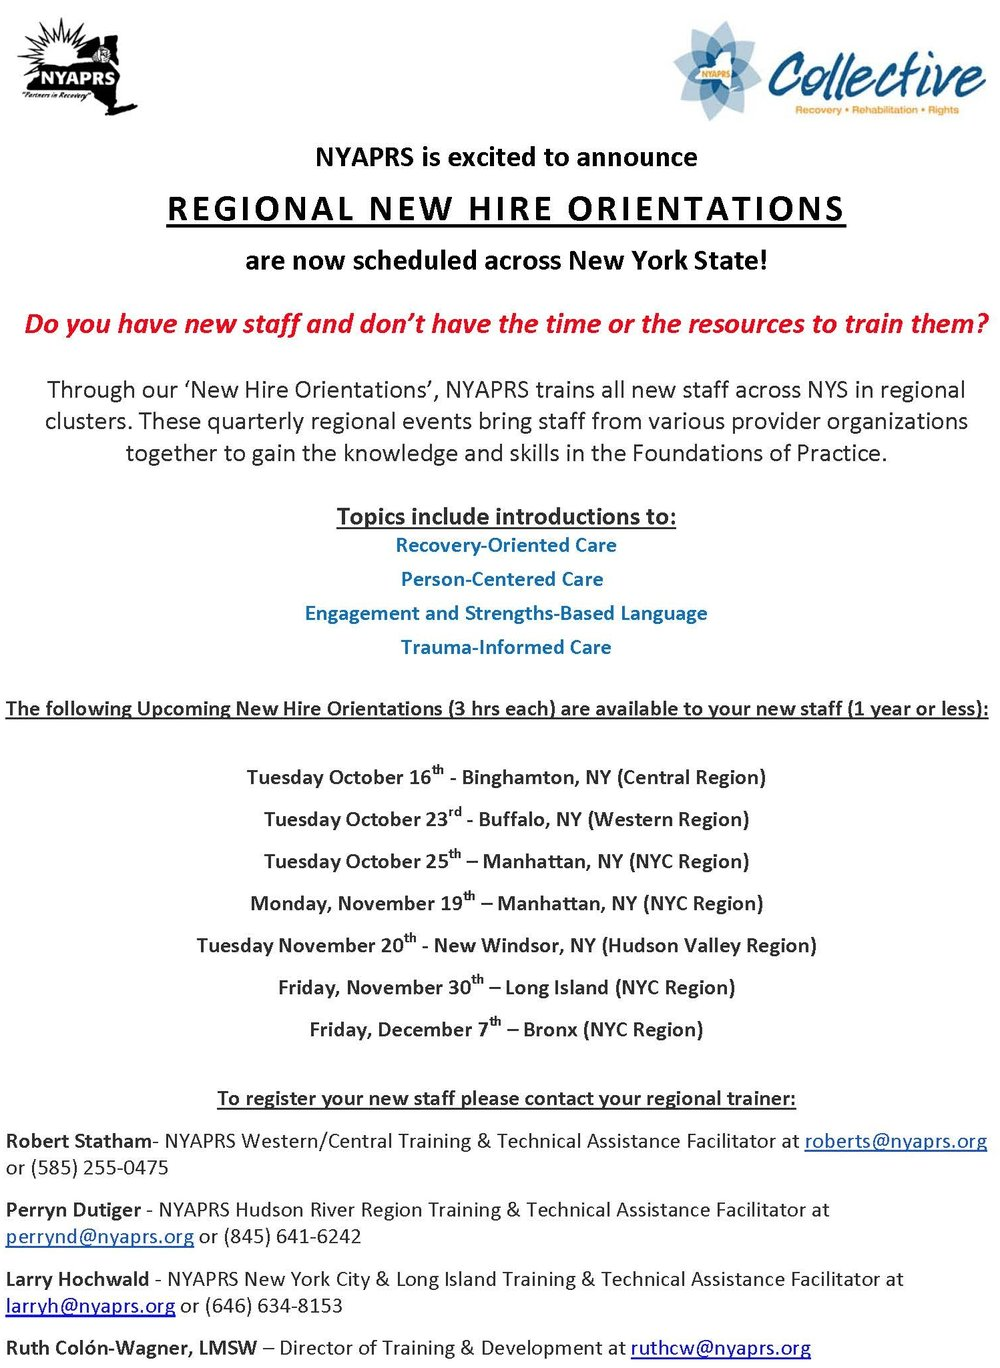 2018 New Hire Orientation Email Blast-Flyer.jpg